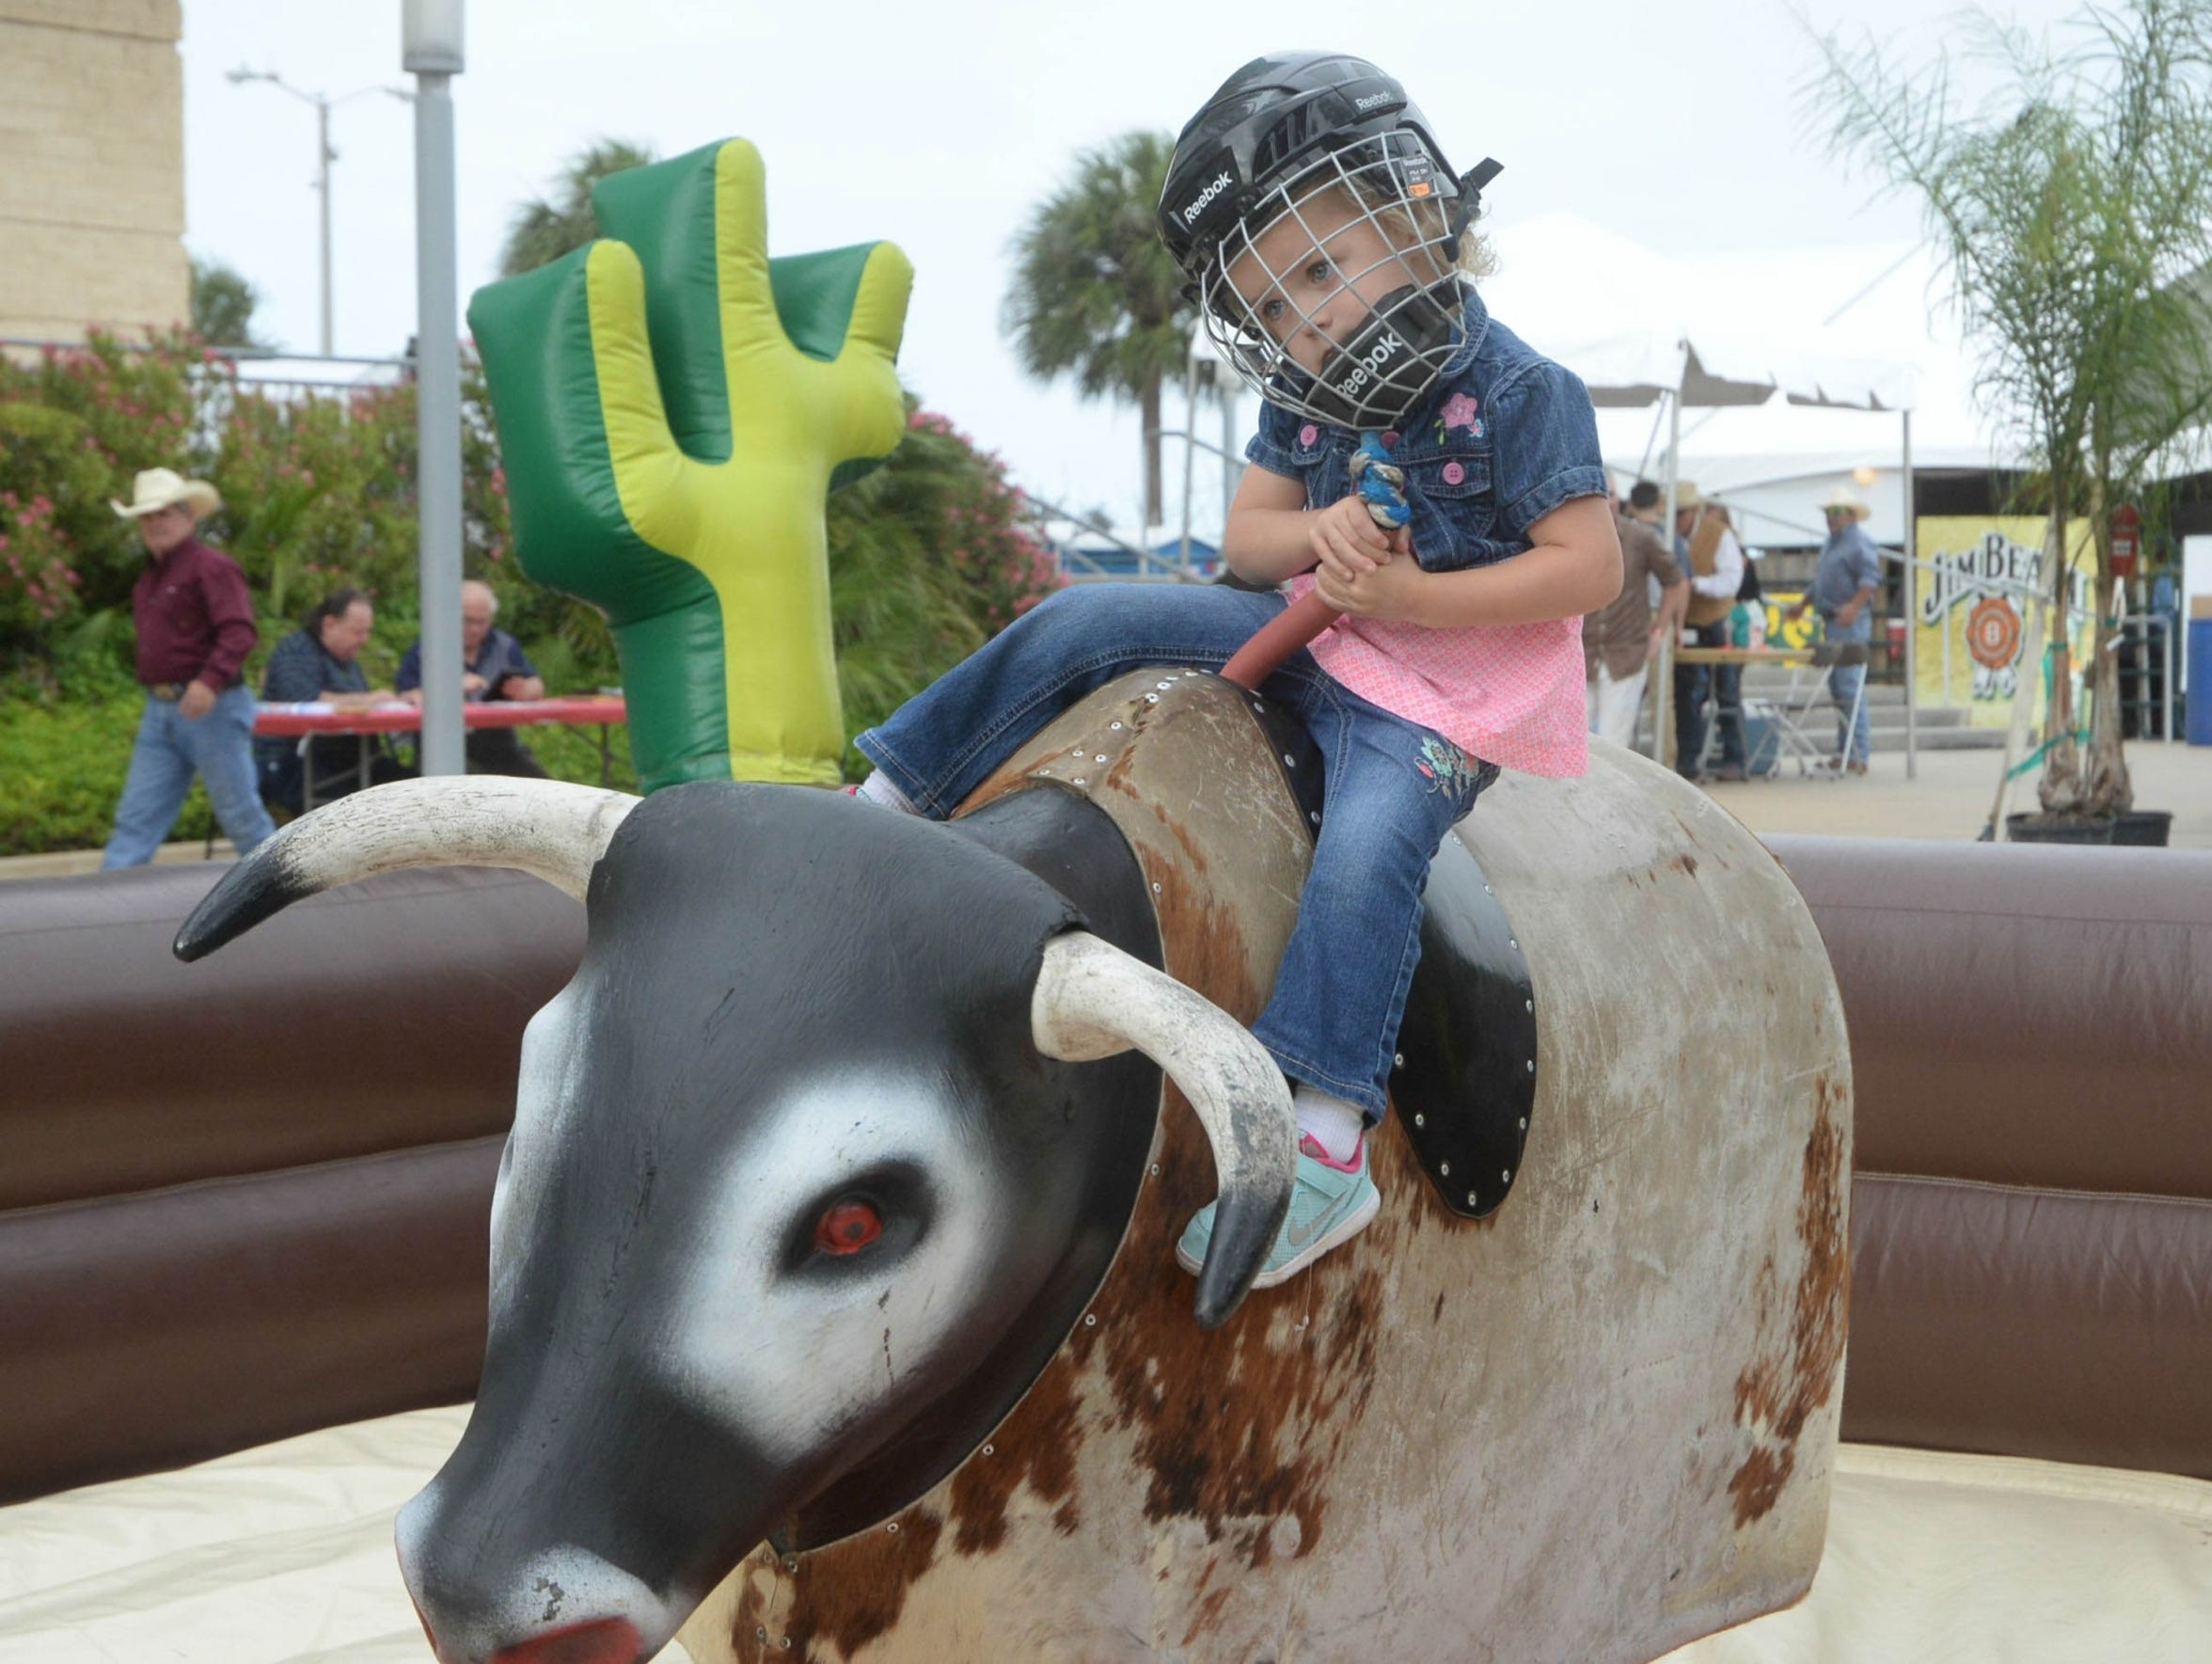 From the Mutton Bustin' event to inflatable bull-riding,